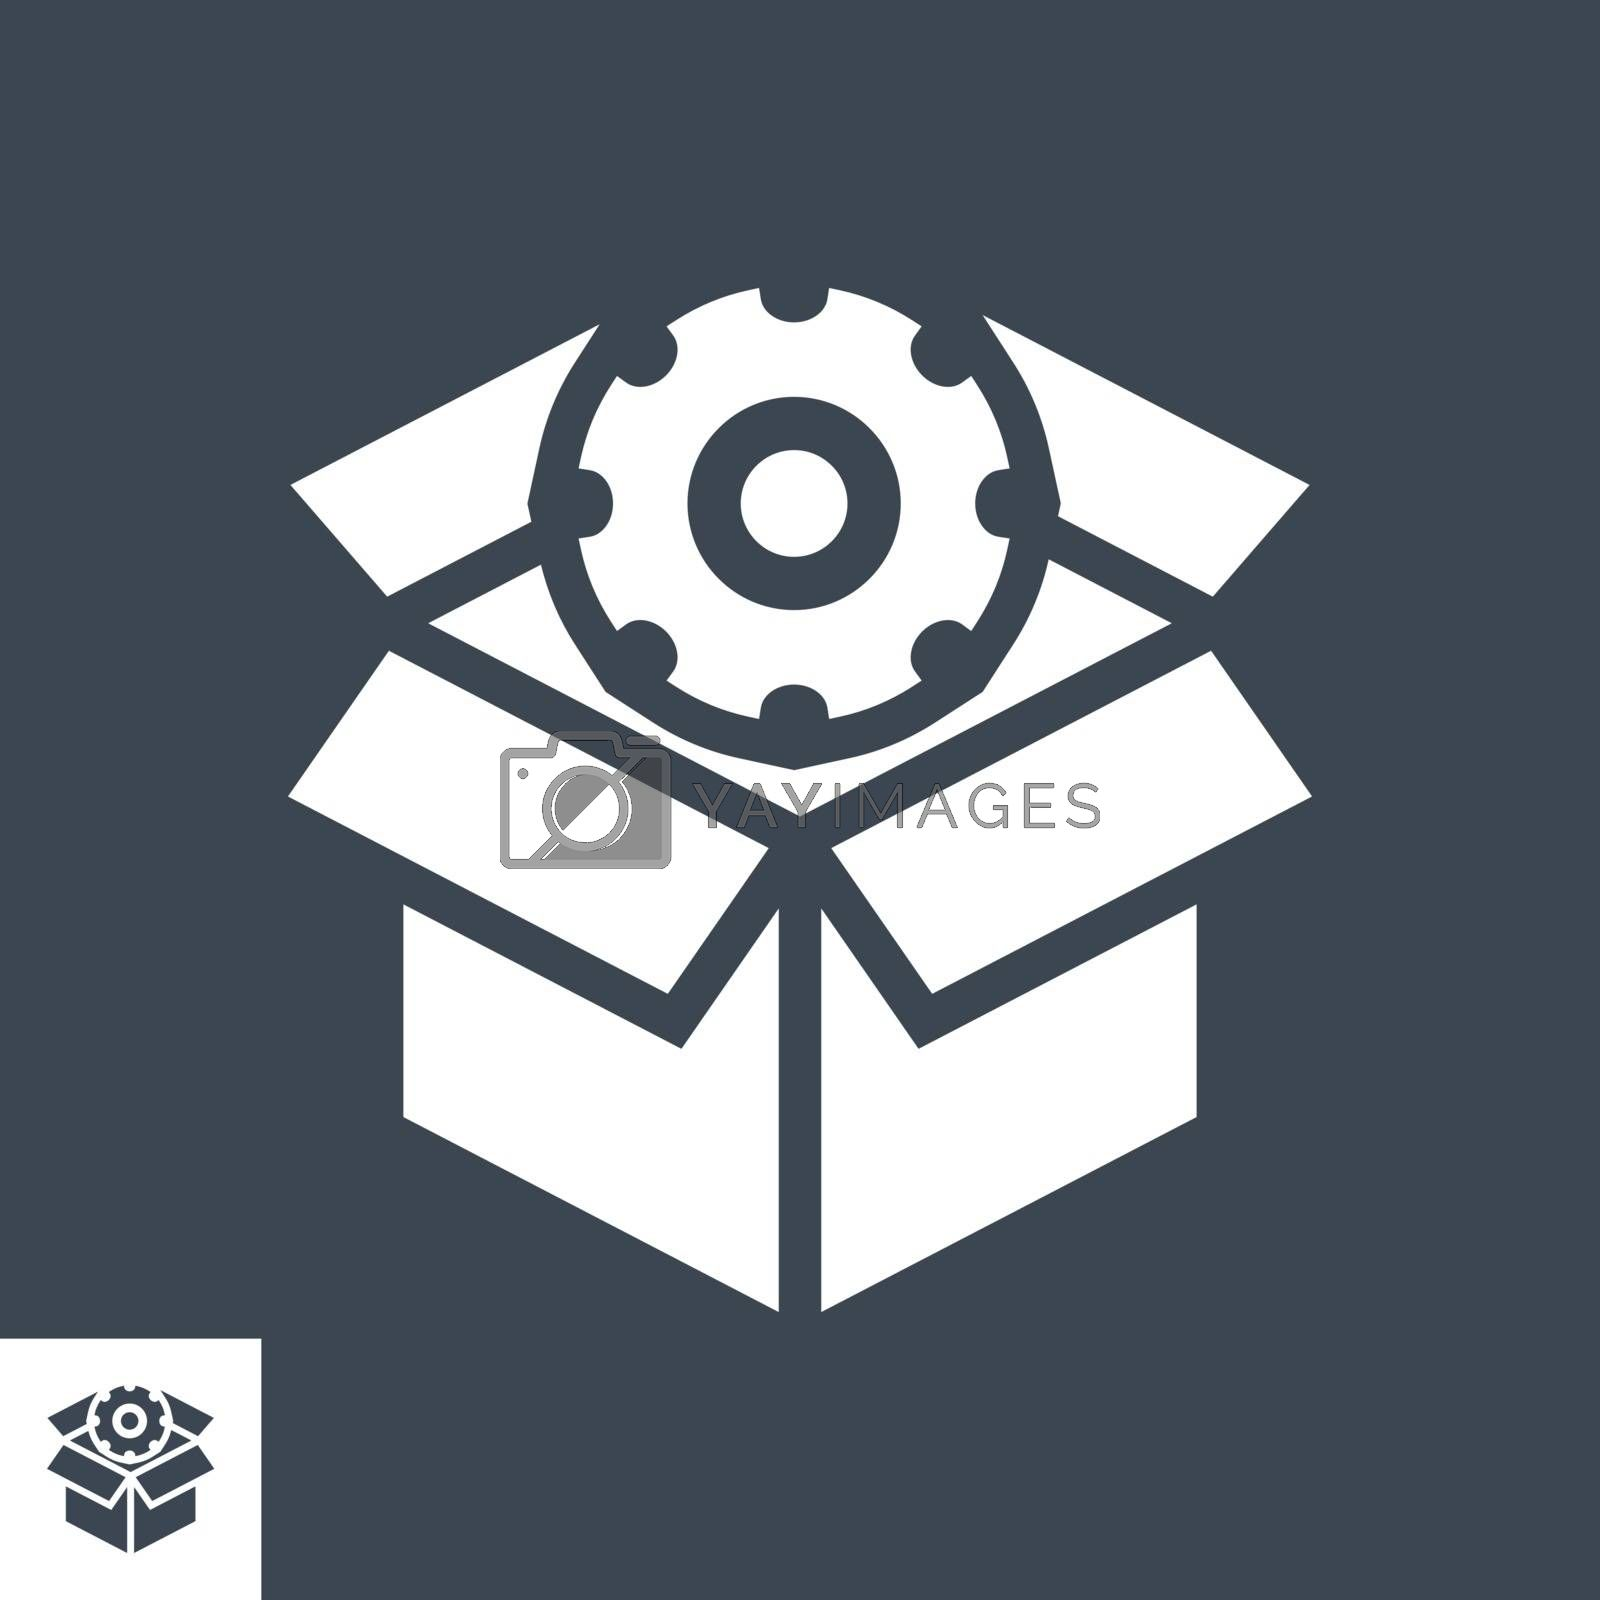 SEO Packages Related Vector Glyph Icon. Isolated on Black Background. Vector Illustration.